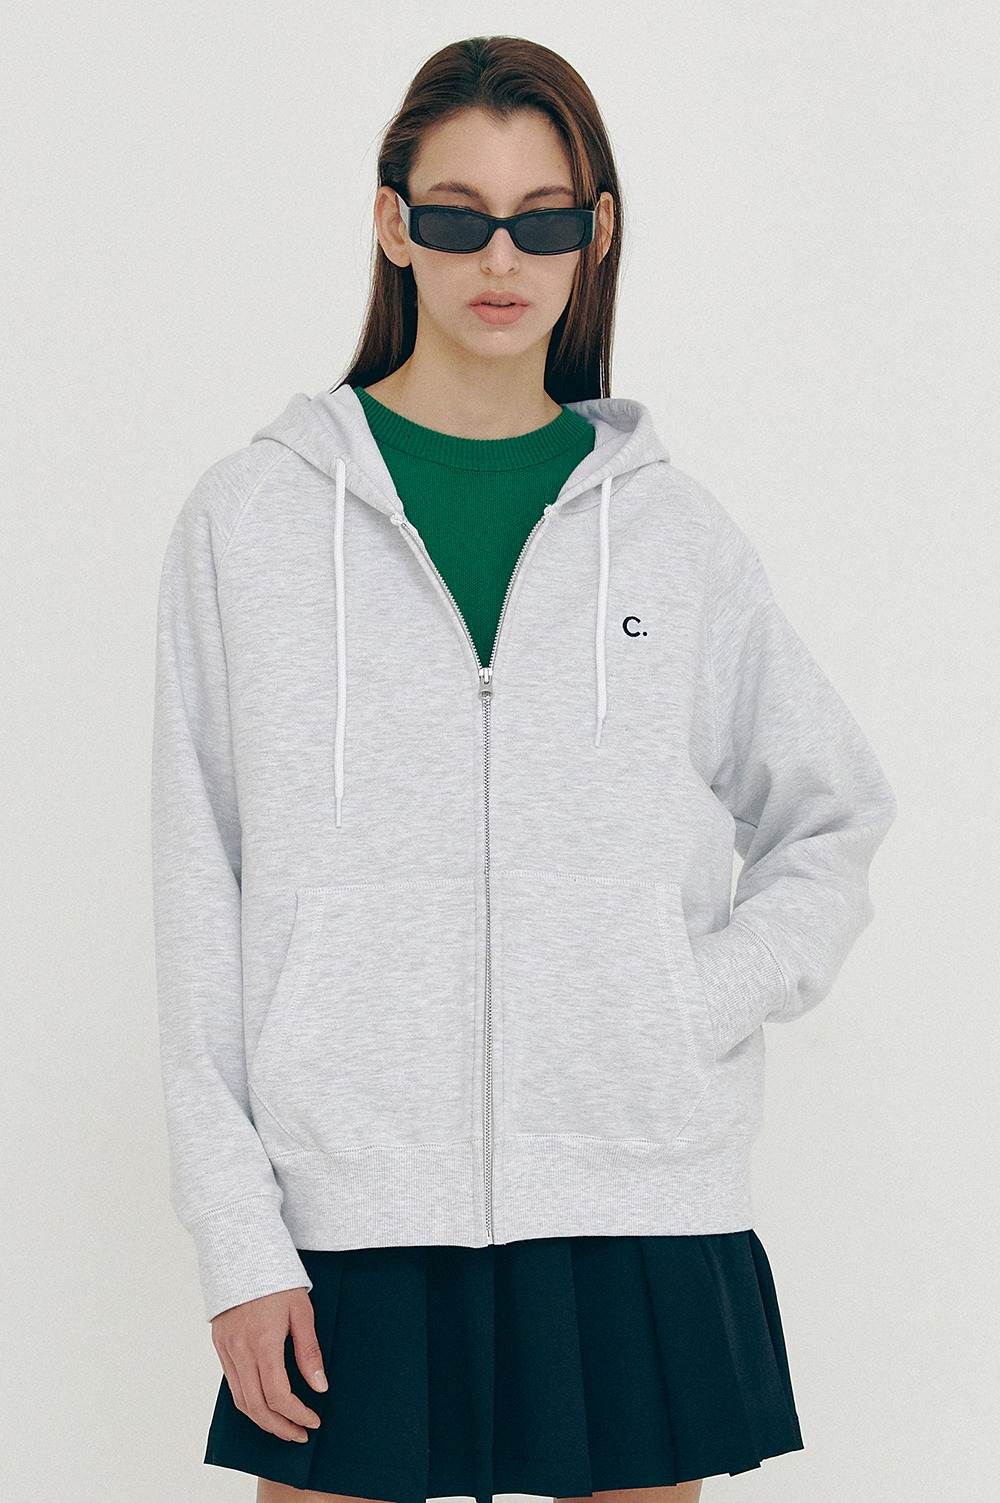 clove - [5/28(금) 예약배송][SS21 clove] Active Hoody Zip-up Light Grey